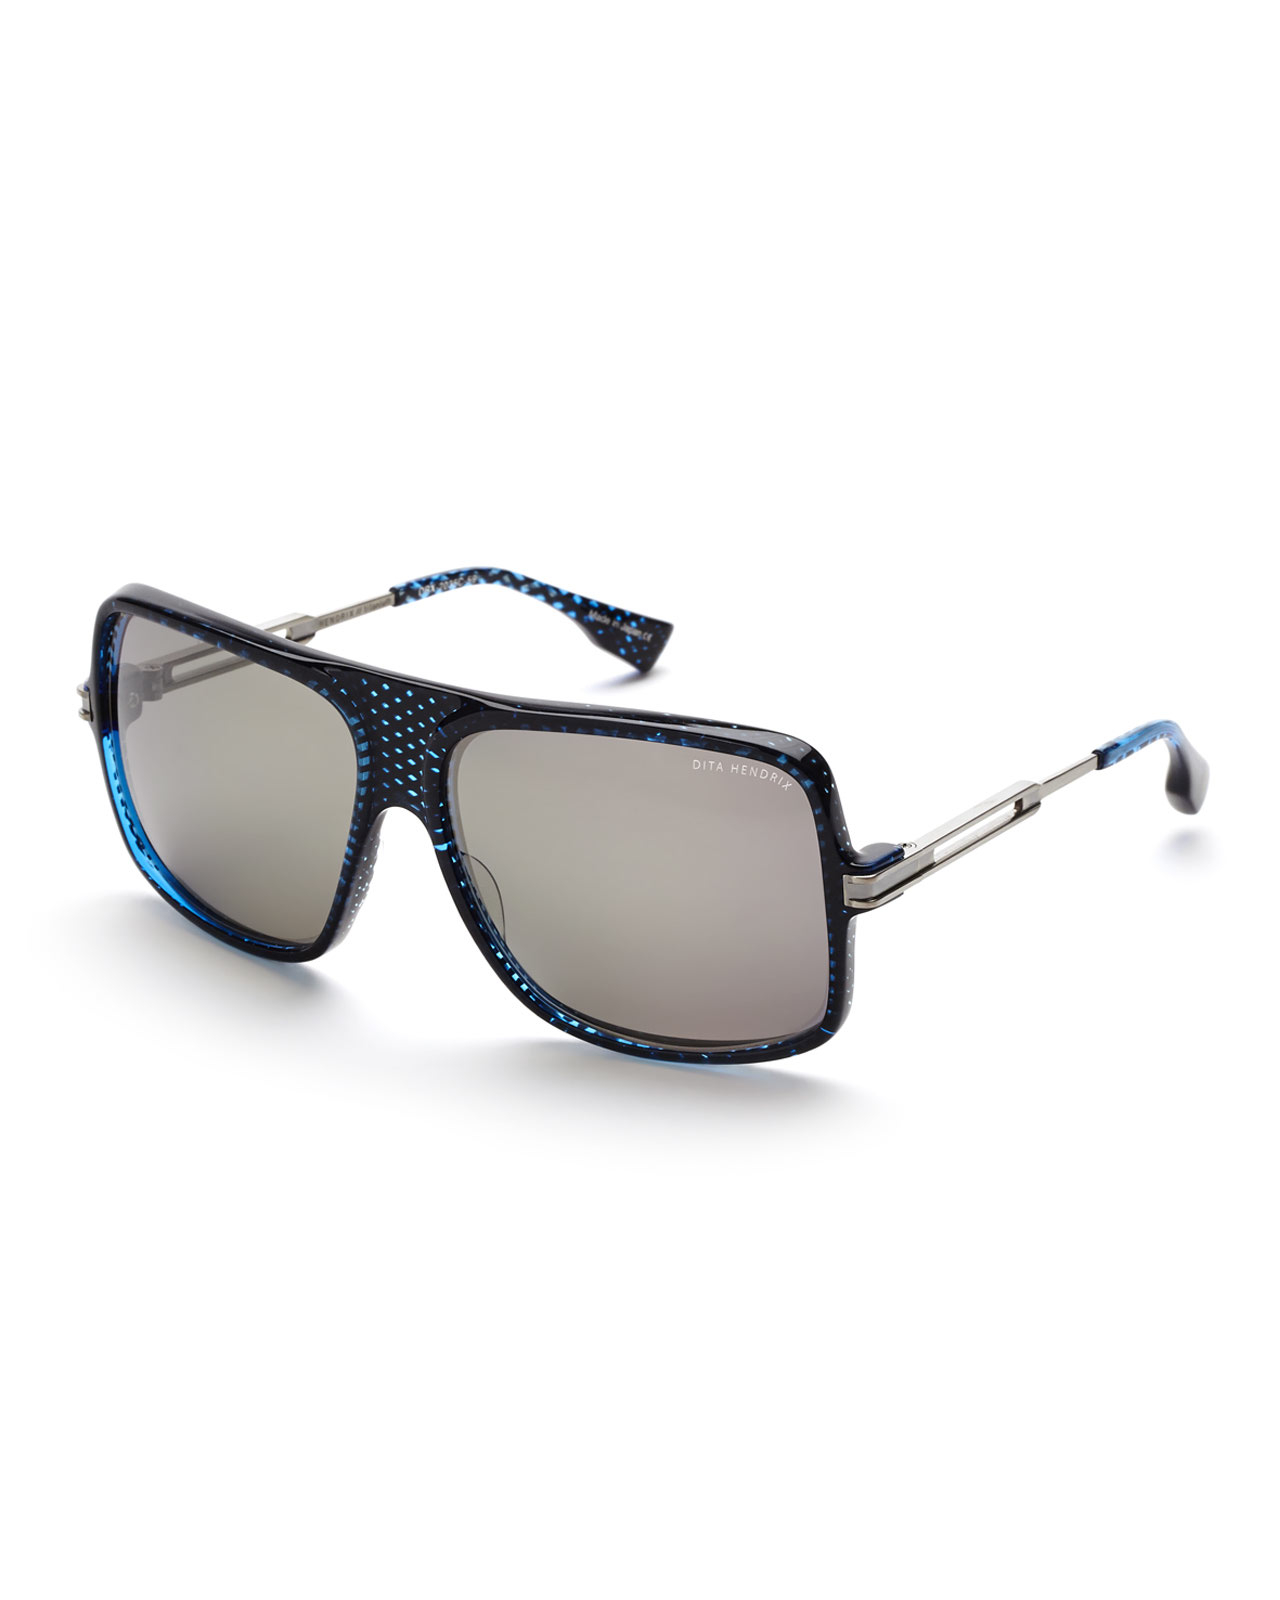 Dita Hendrix Sunglasses  dita hendrix drx 2035 blue carbon antique silver tone xl square